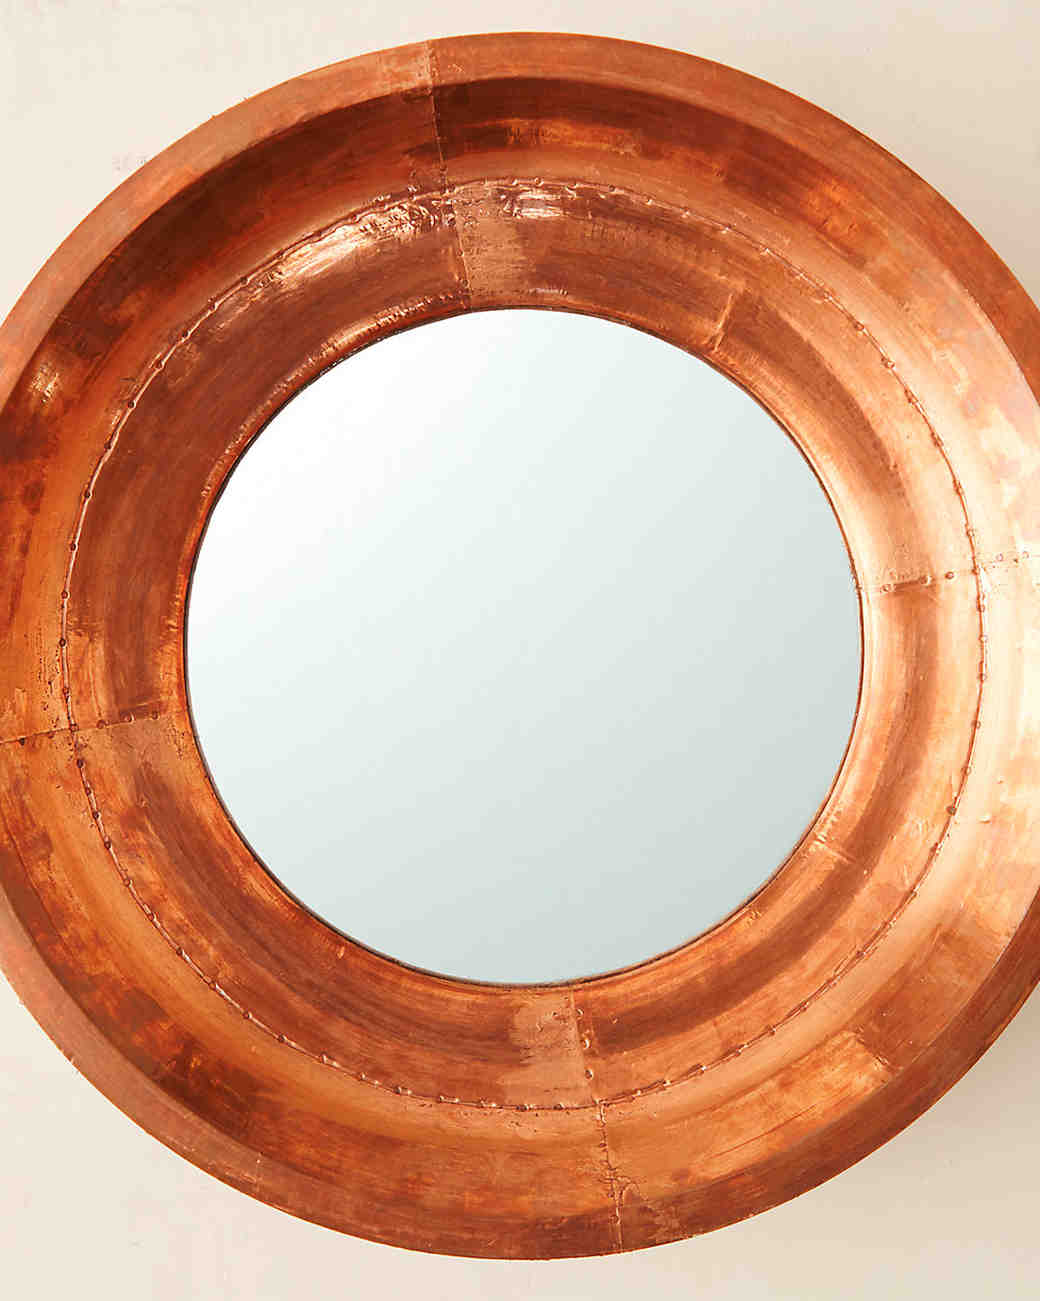 copper-registry-shop-terrain-mirror-0116.jpg